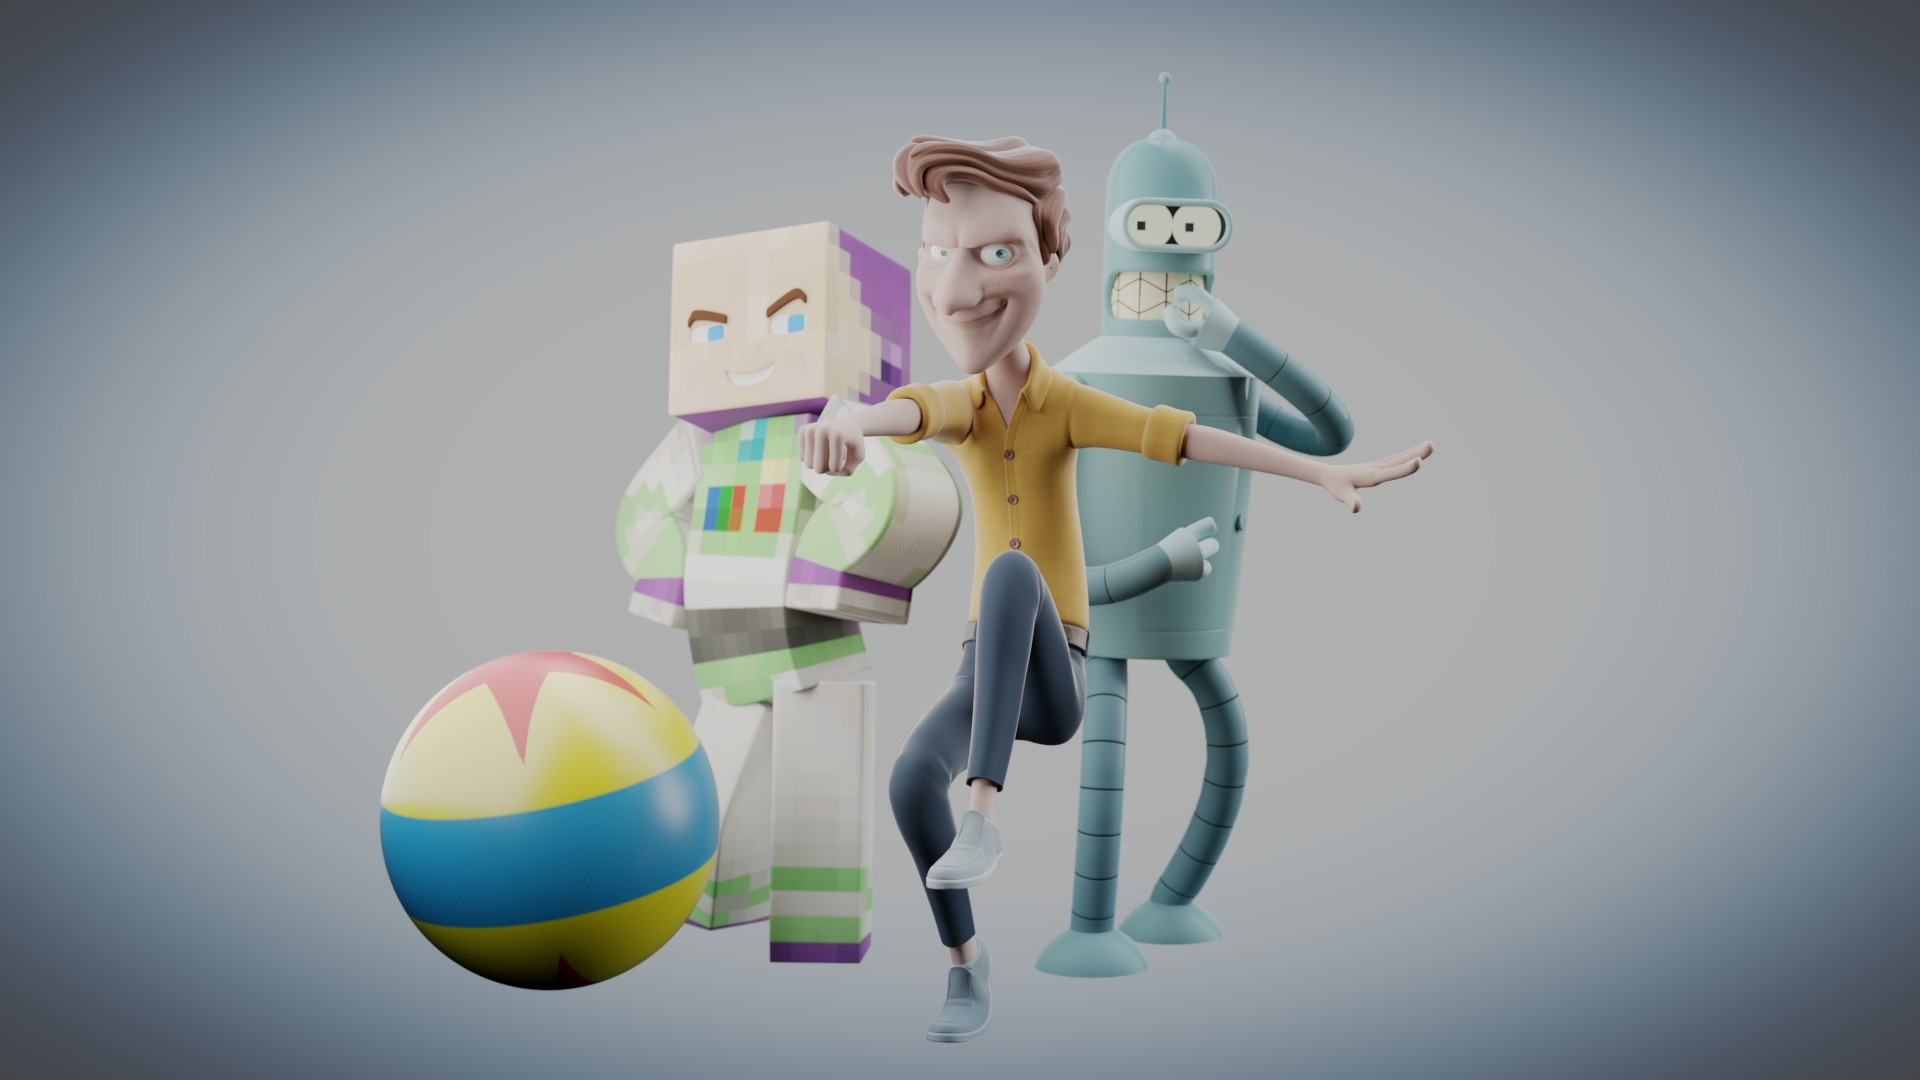 3D animation of characters, etc